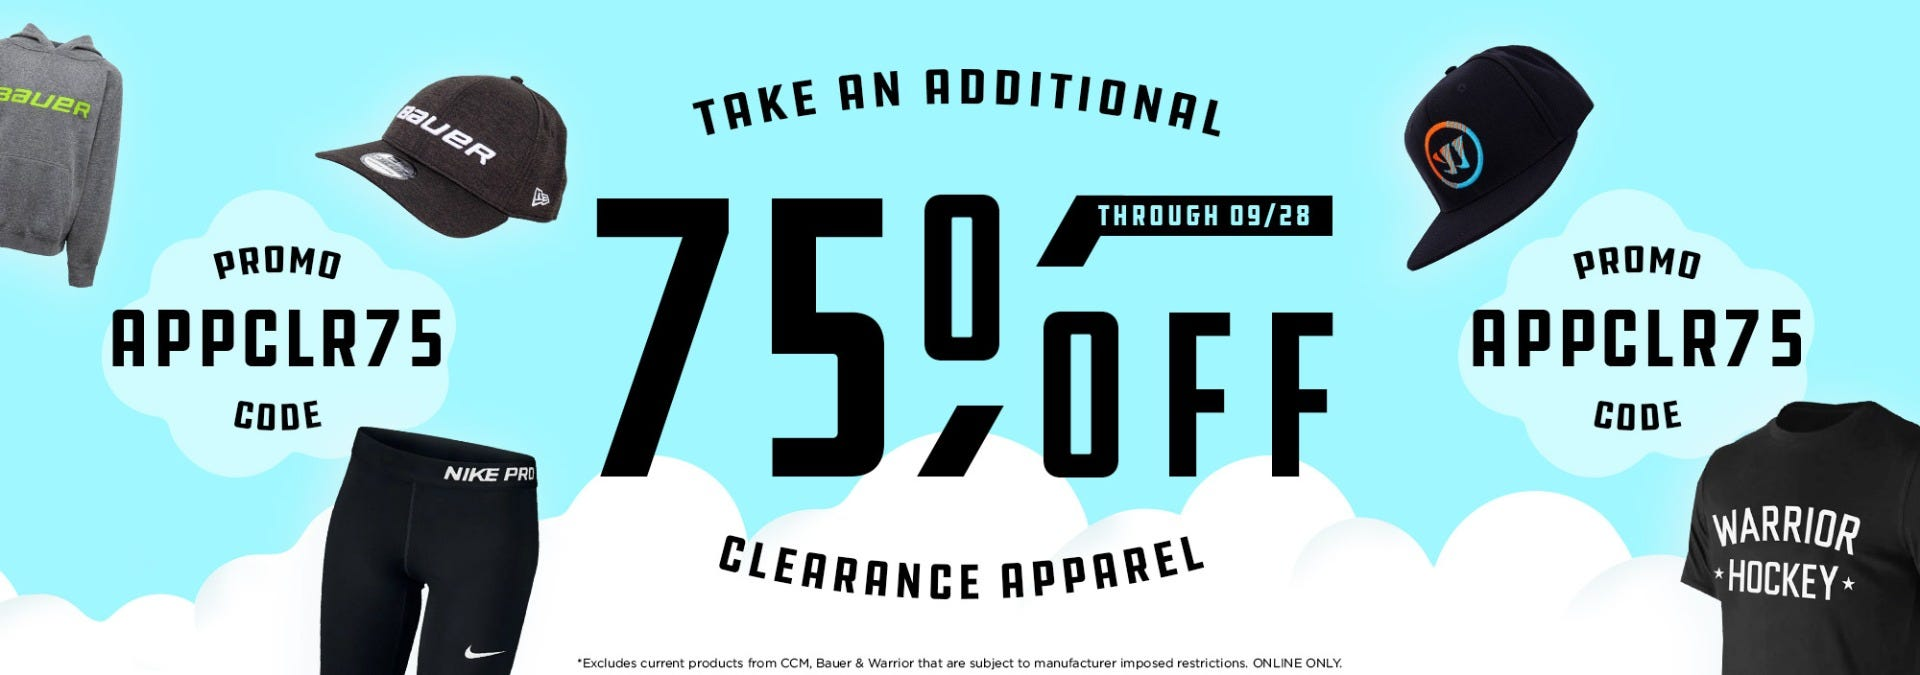 Take an additional 75% off all clearance apparel